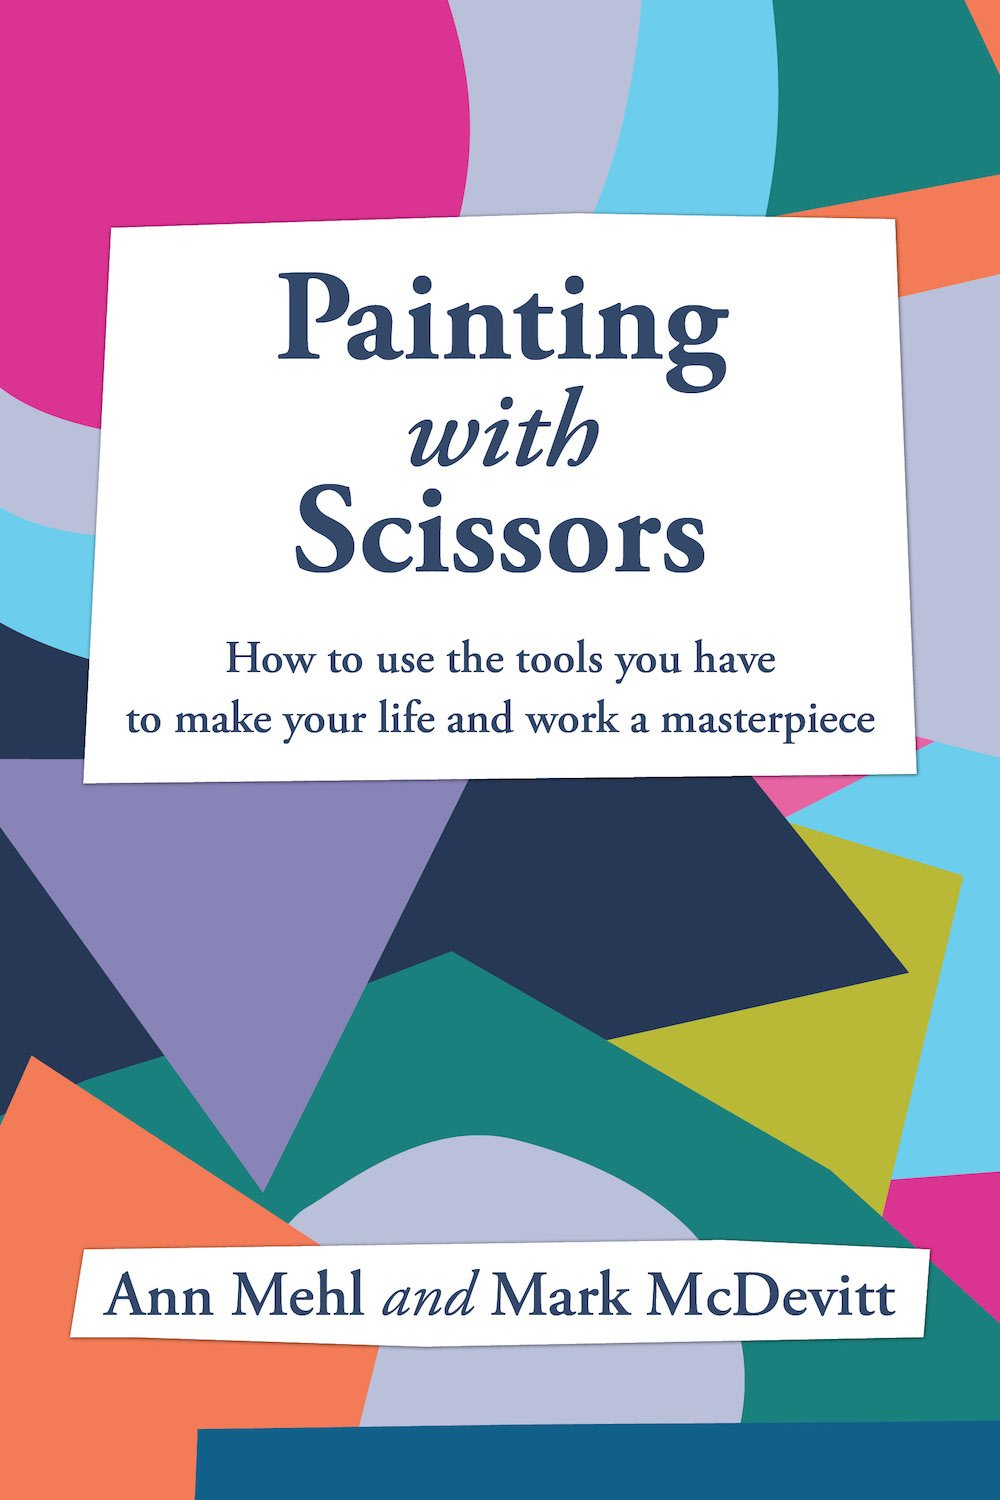 Painting with Scissors